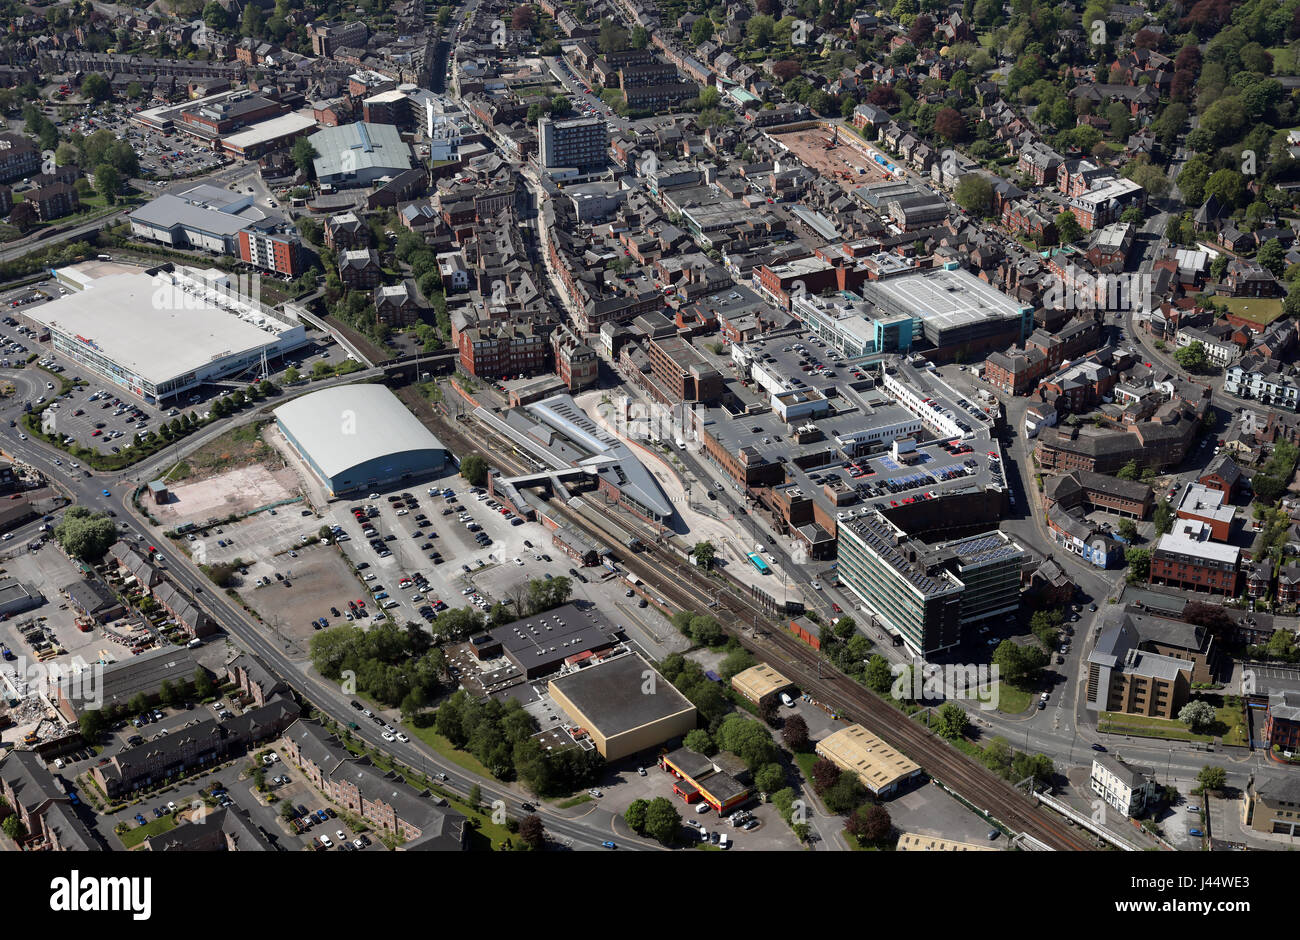 aerial view of Altrincham town centre, UK Stock Photo